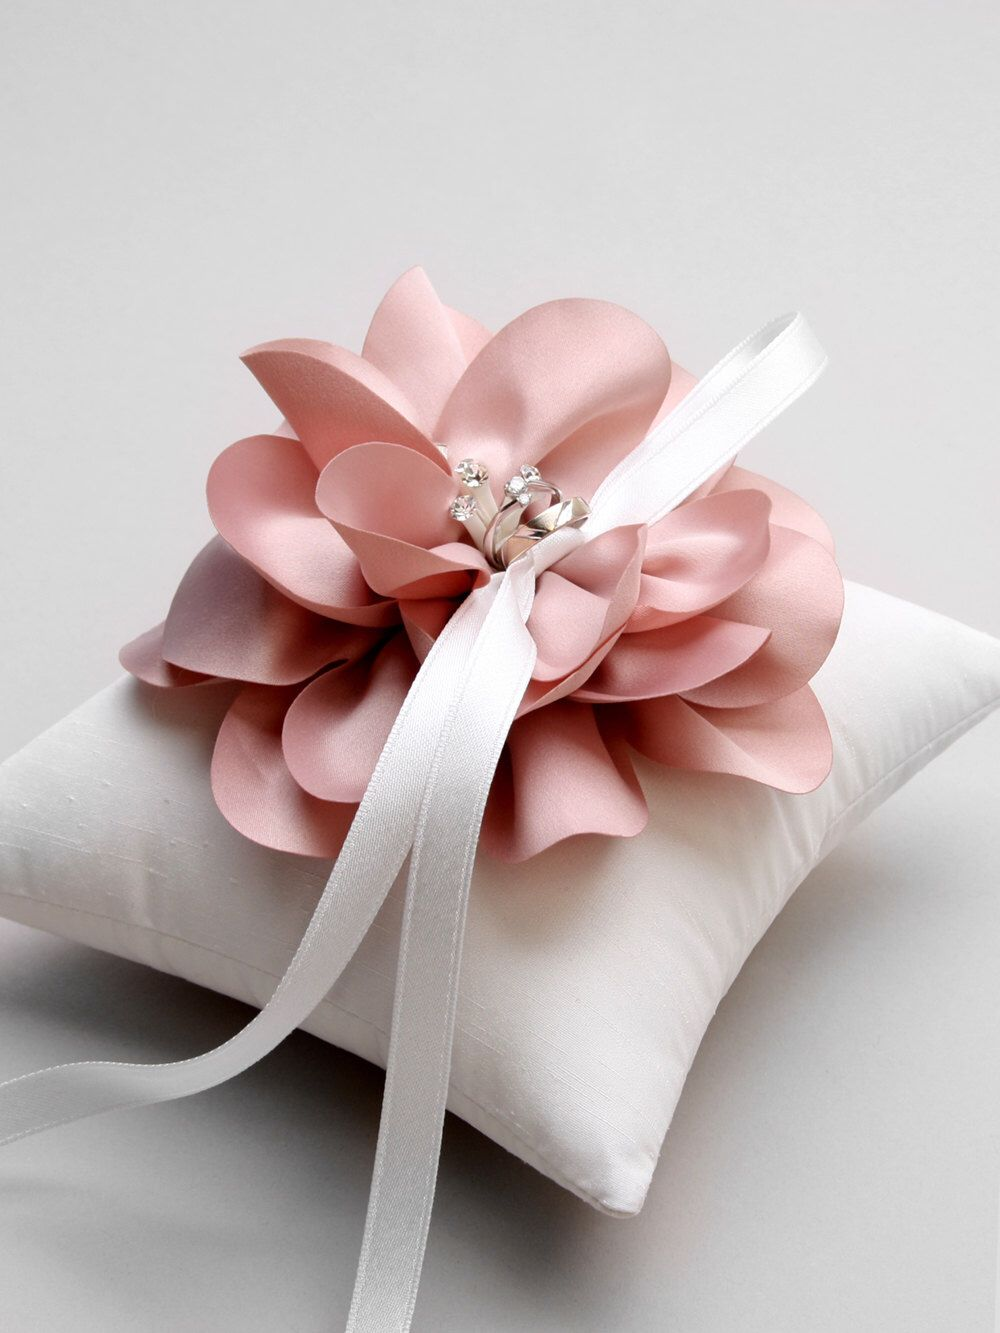 images rings inspiration wedding pinterest ring ideas about holder pillow enjoyable on download corners